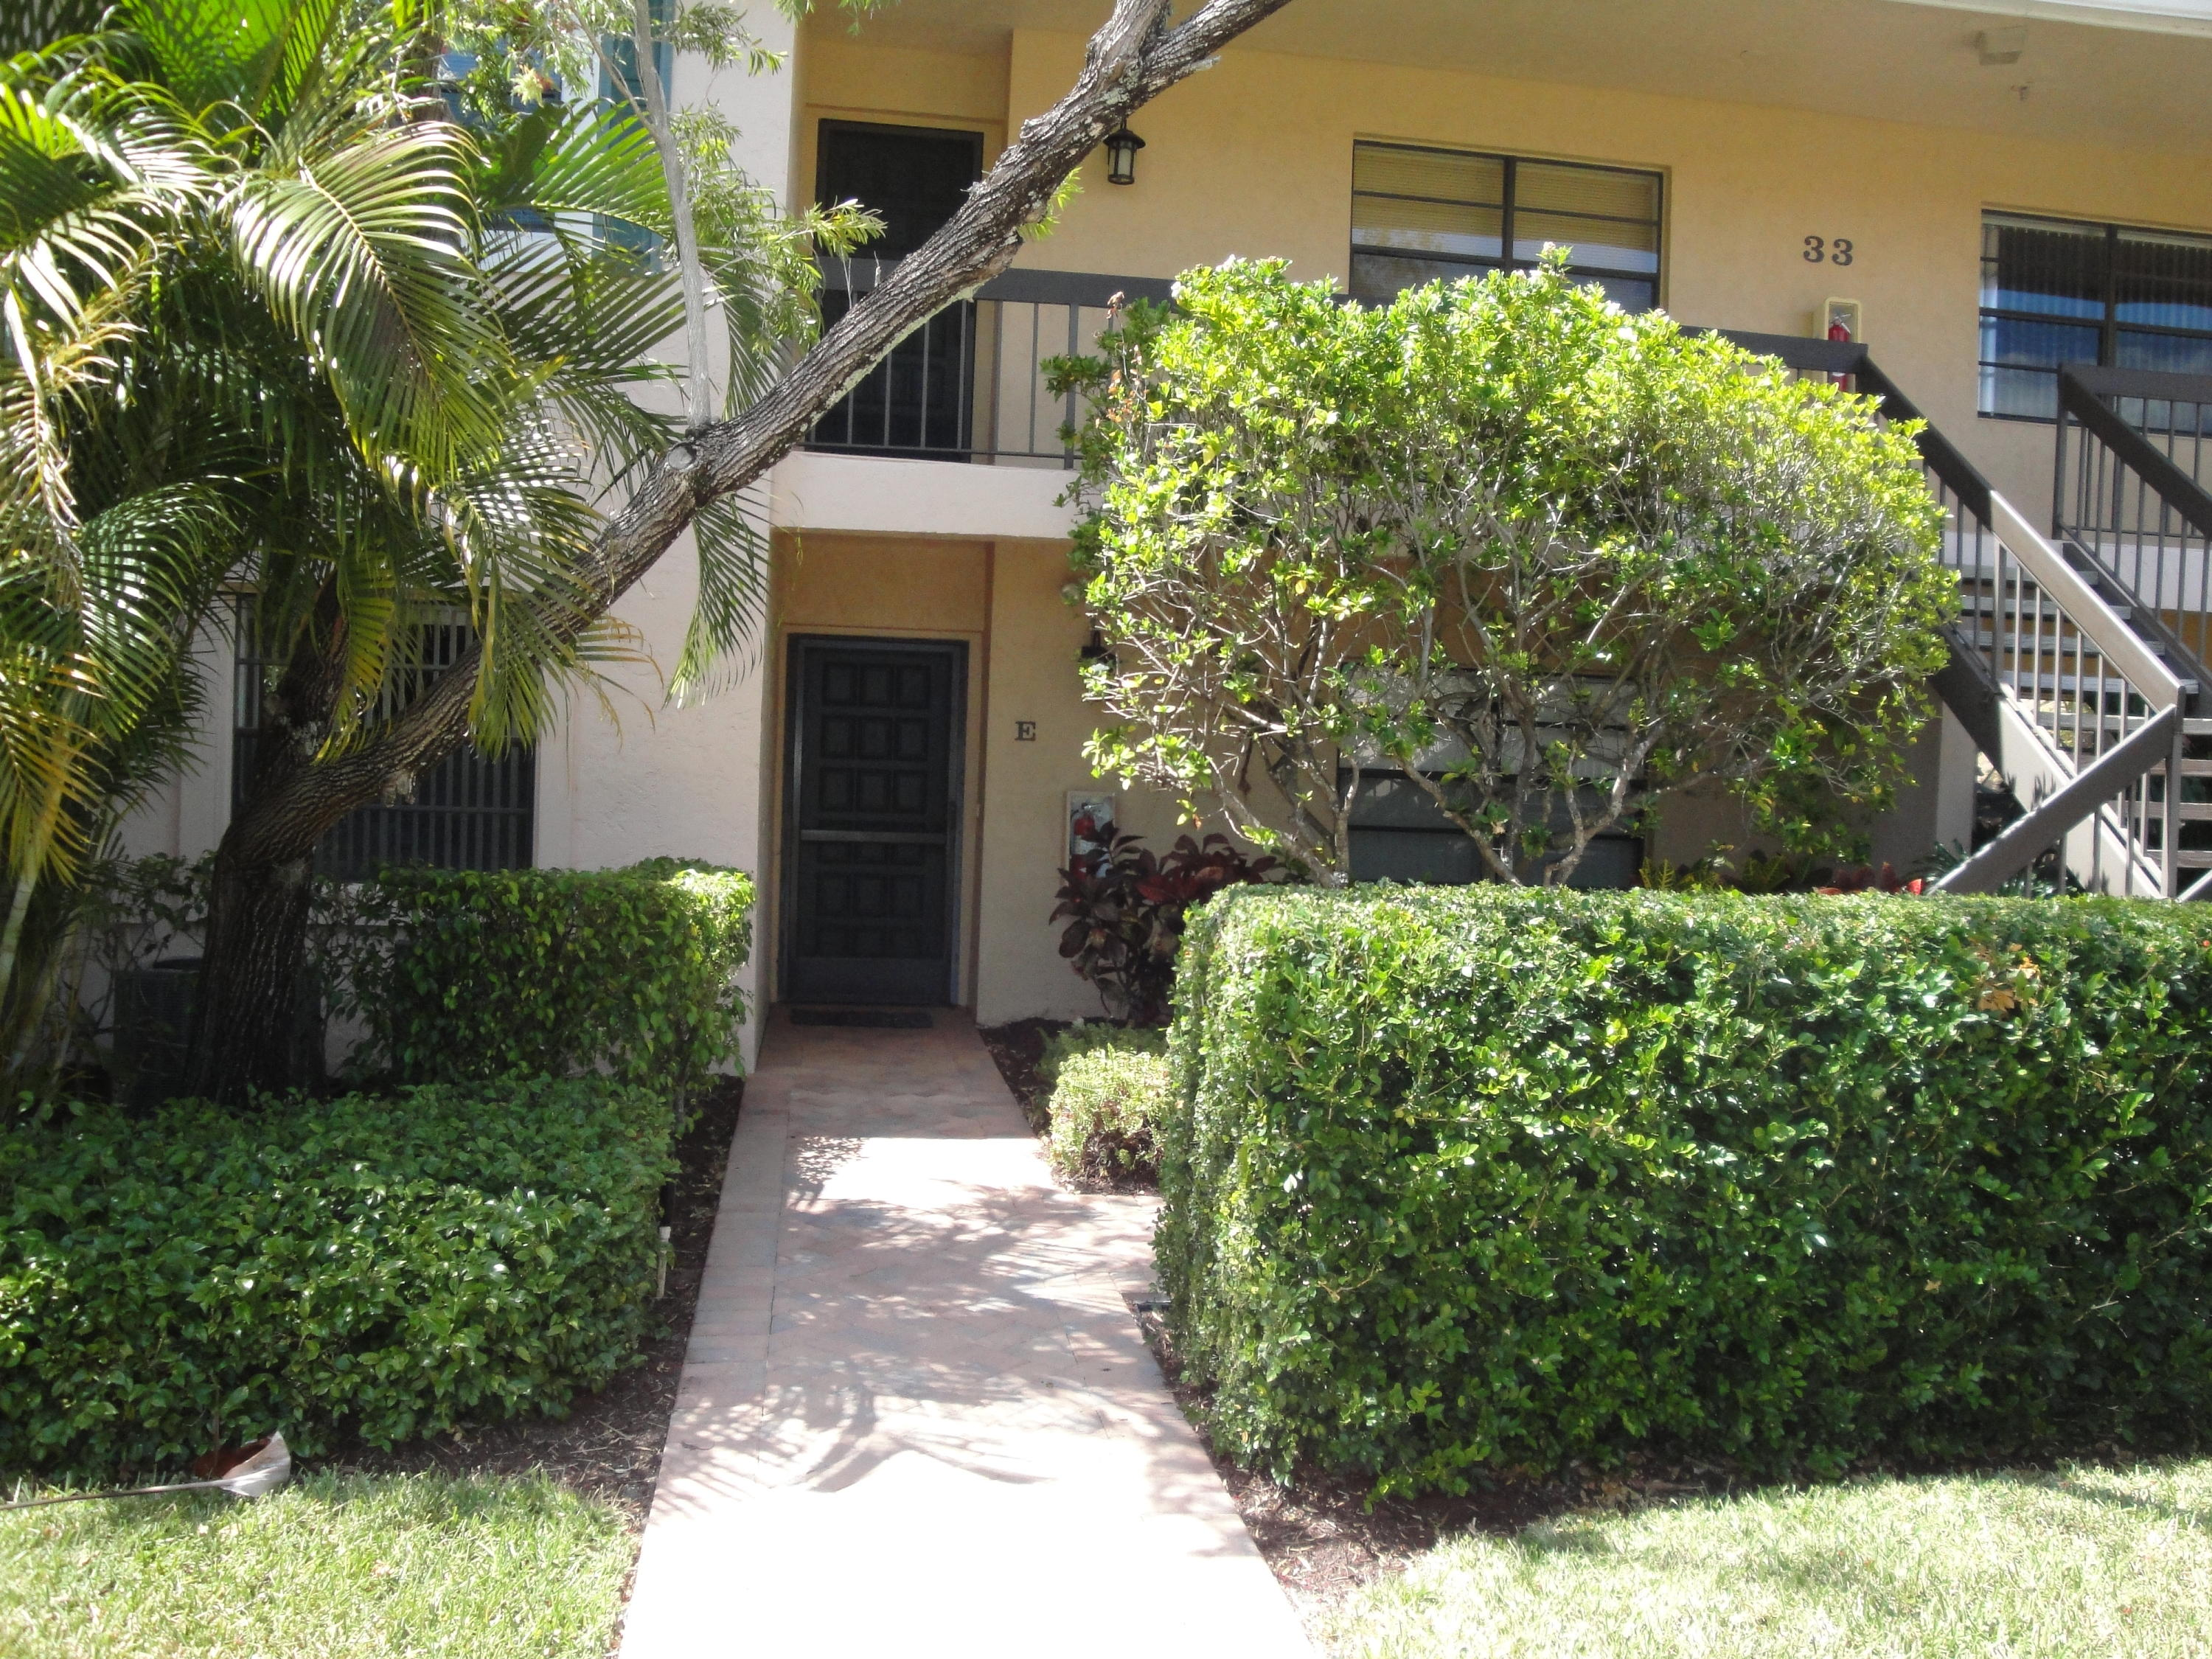 33 Southport Lane, Boynton Beach, Florida 33436, 2 Bedrooms Bedrooms, ,2 BathroomsBathrooms,Condo/Coop,For Sale,Hunters Run,Southport,1,RX-10418500